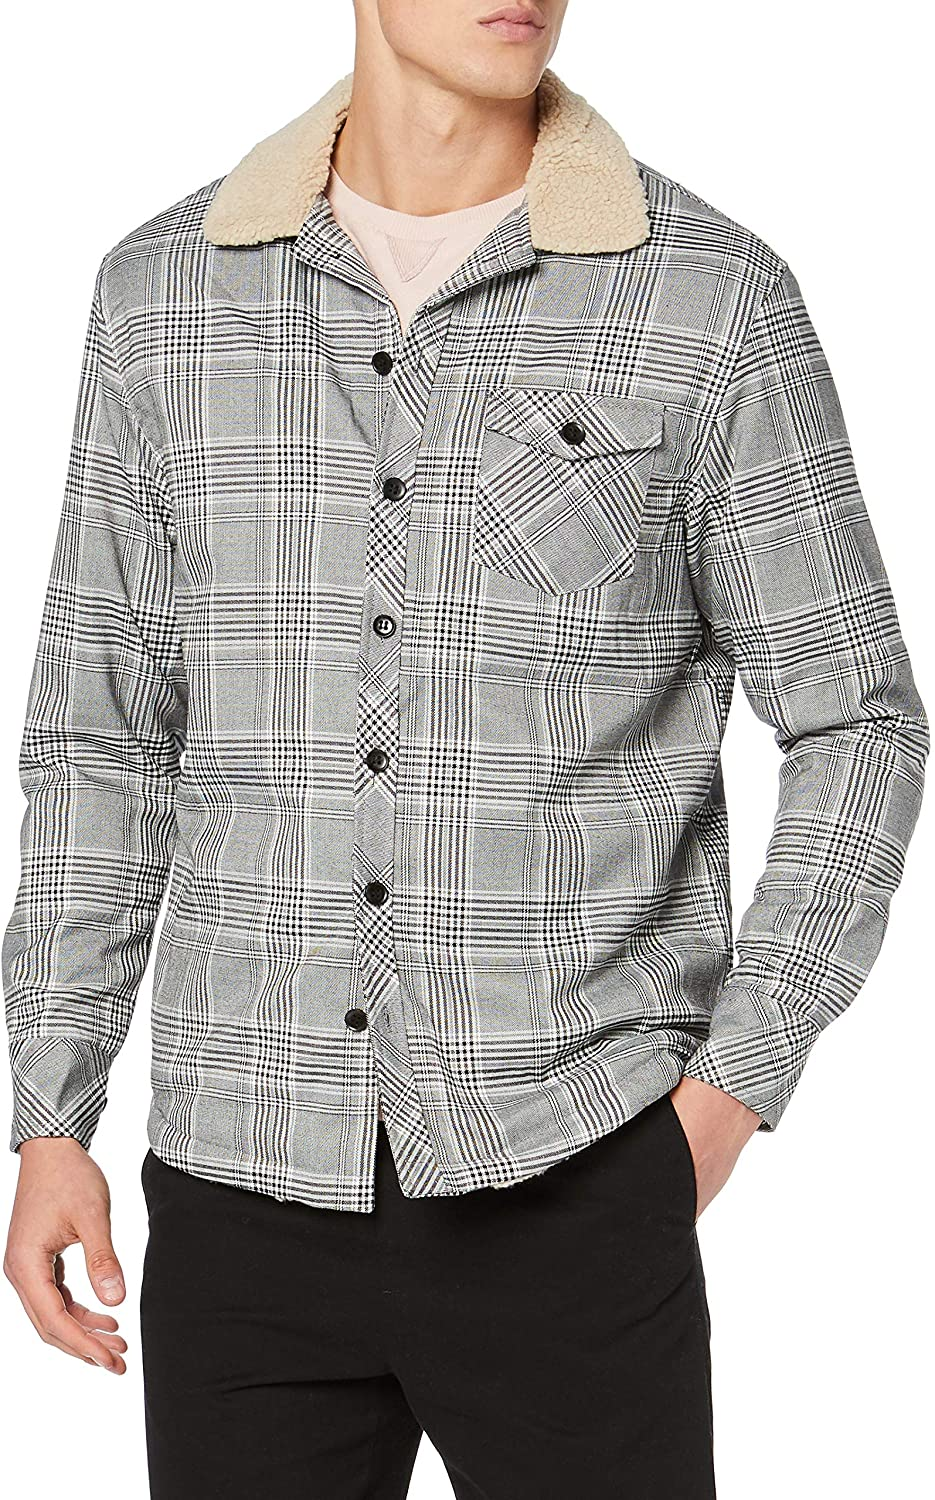 Urban Classics Men Lightweight Jacket Sherpa Lined Glencheck Shirt